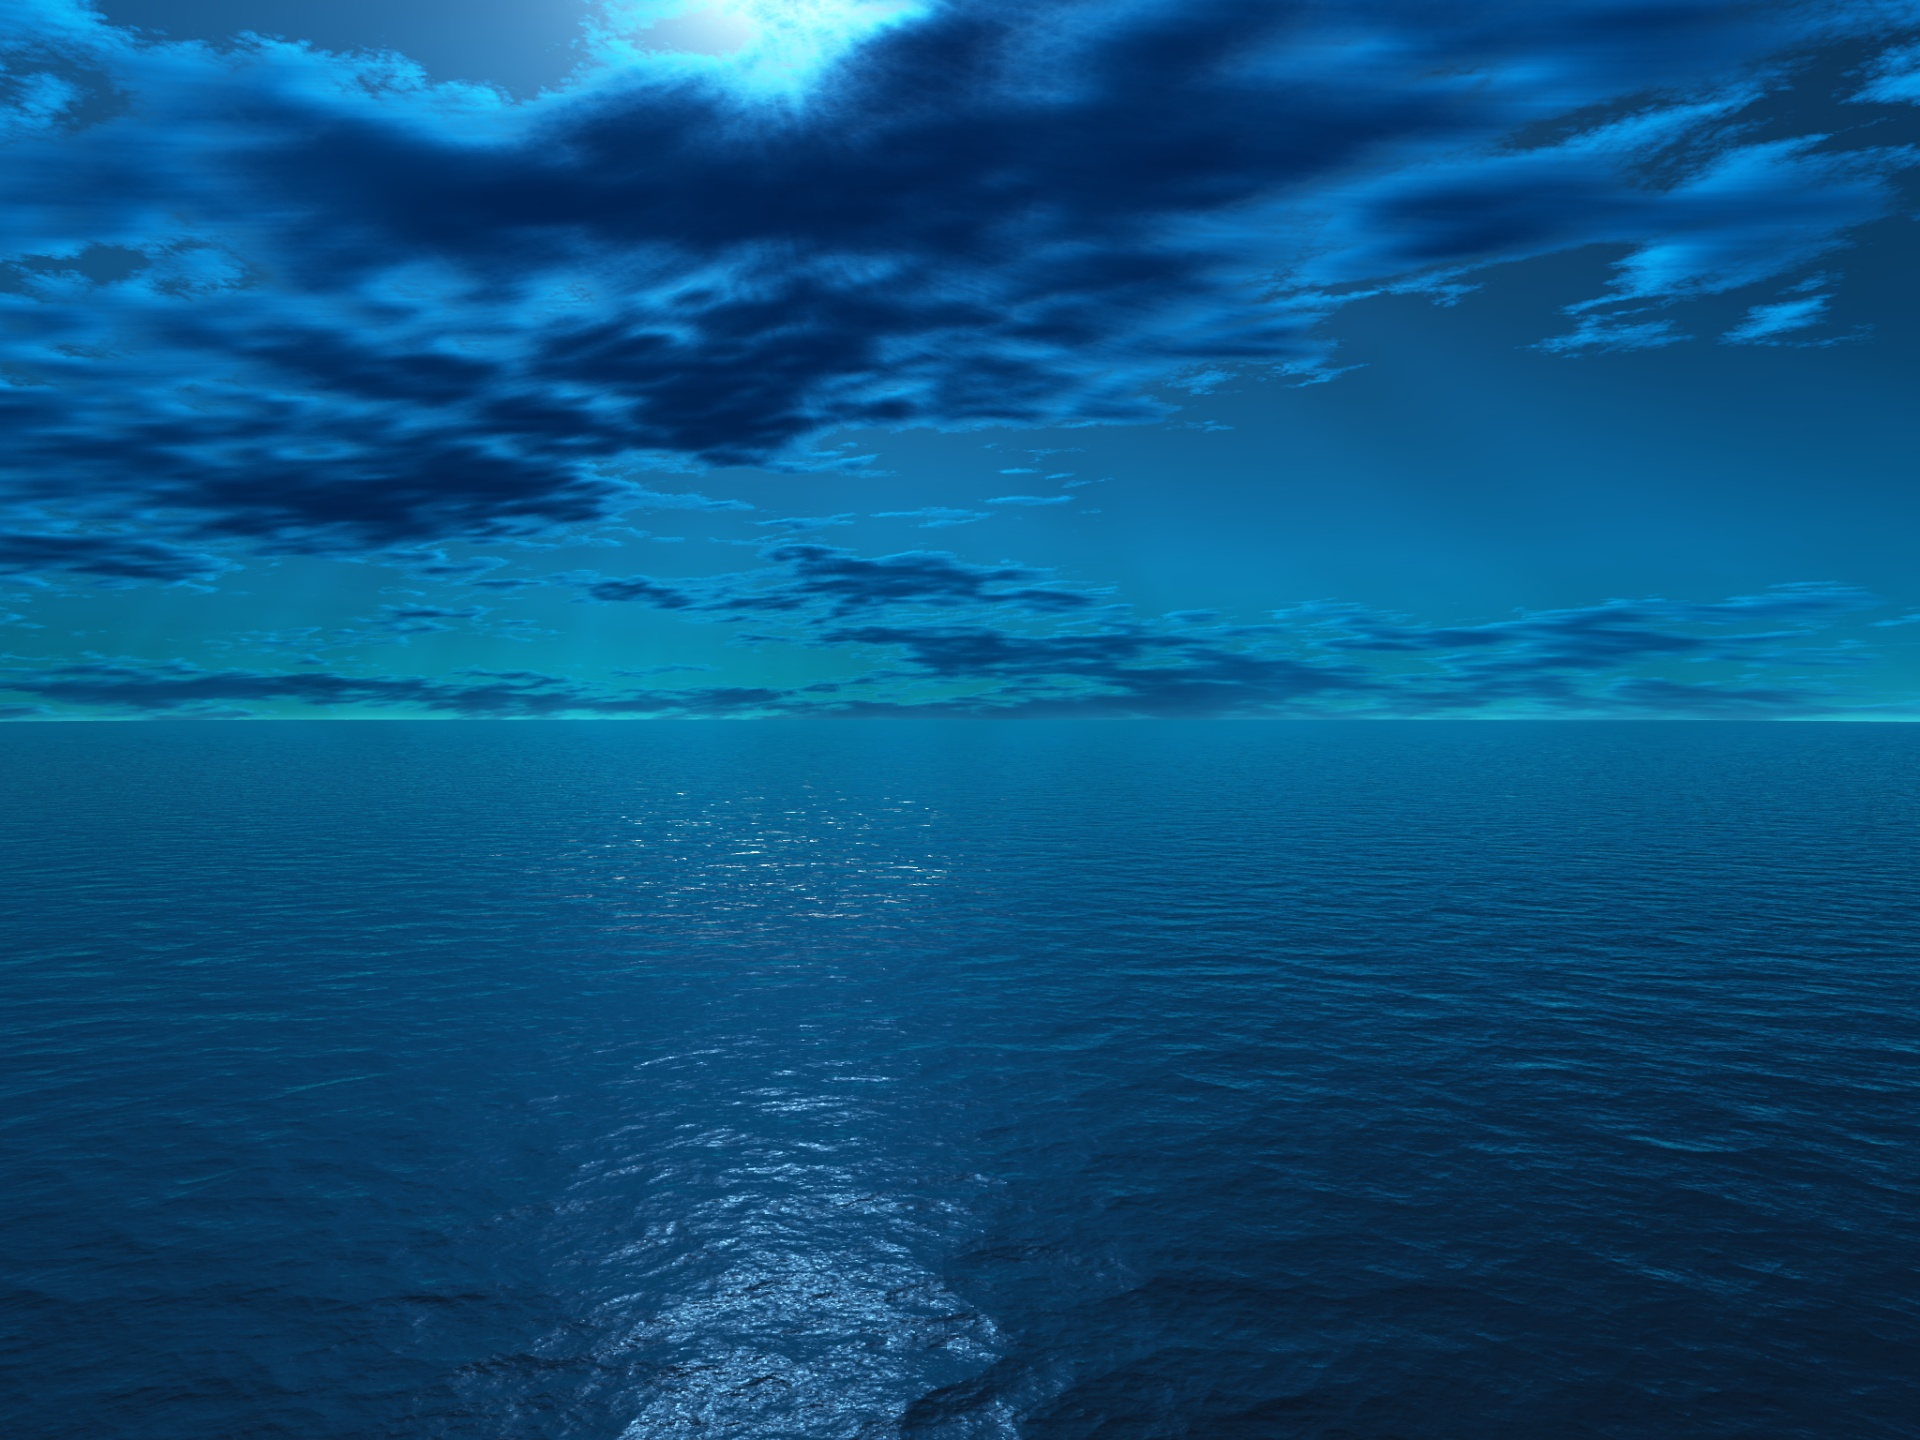 Ocean Fond Ecran 3d Wallpaper Wallpapers Pictures